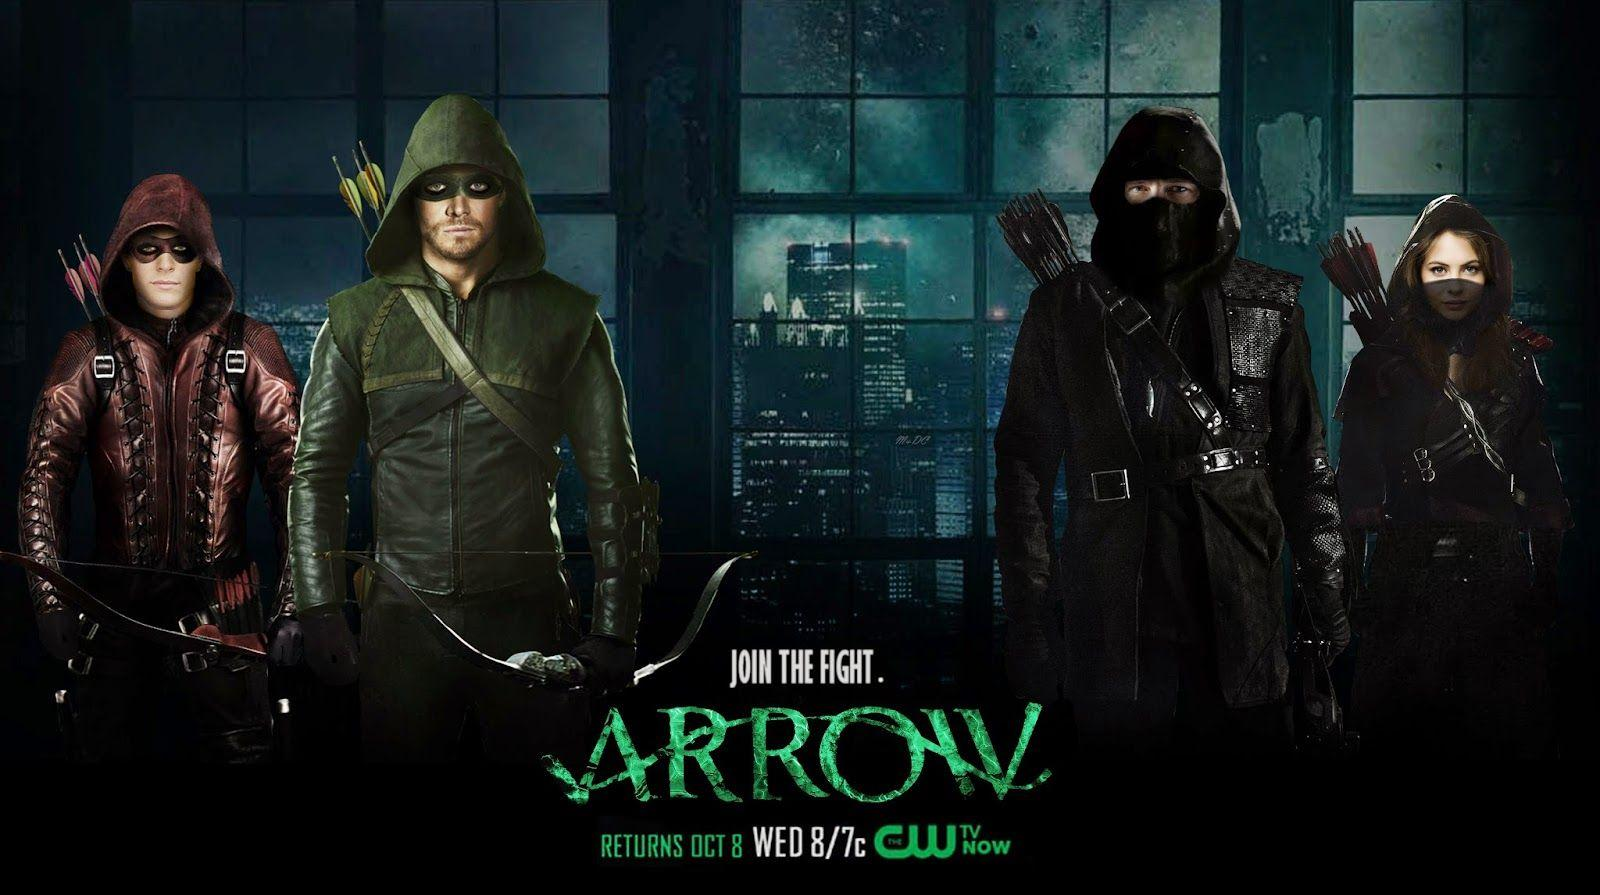 NGN MOVIE & TV ARTICLES: ARROW HITS ITS MARK ONCE AGAIN